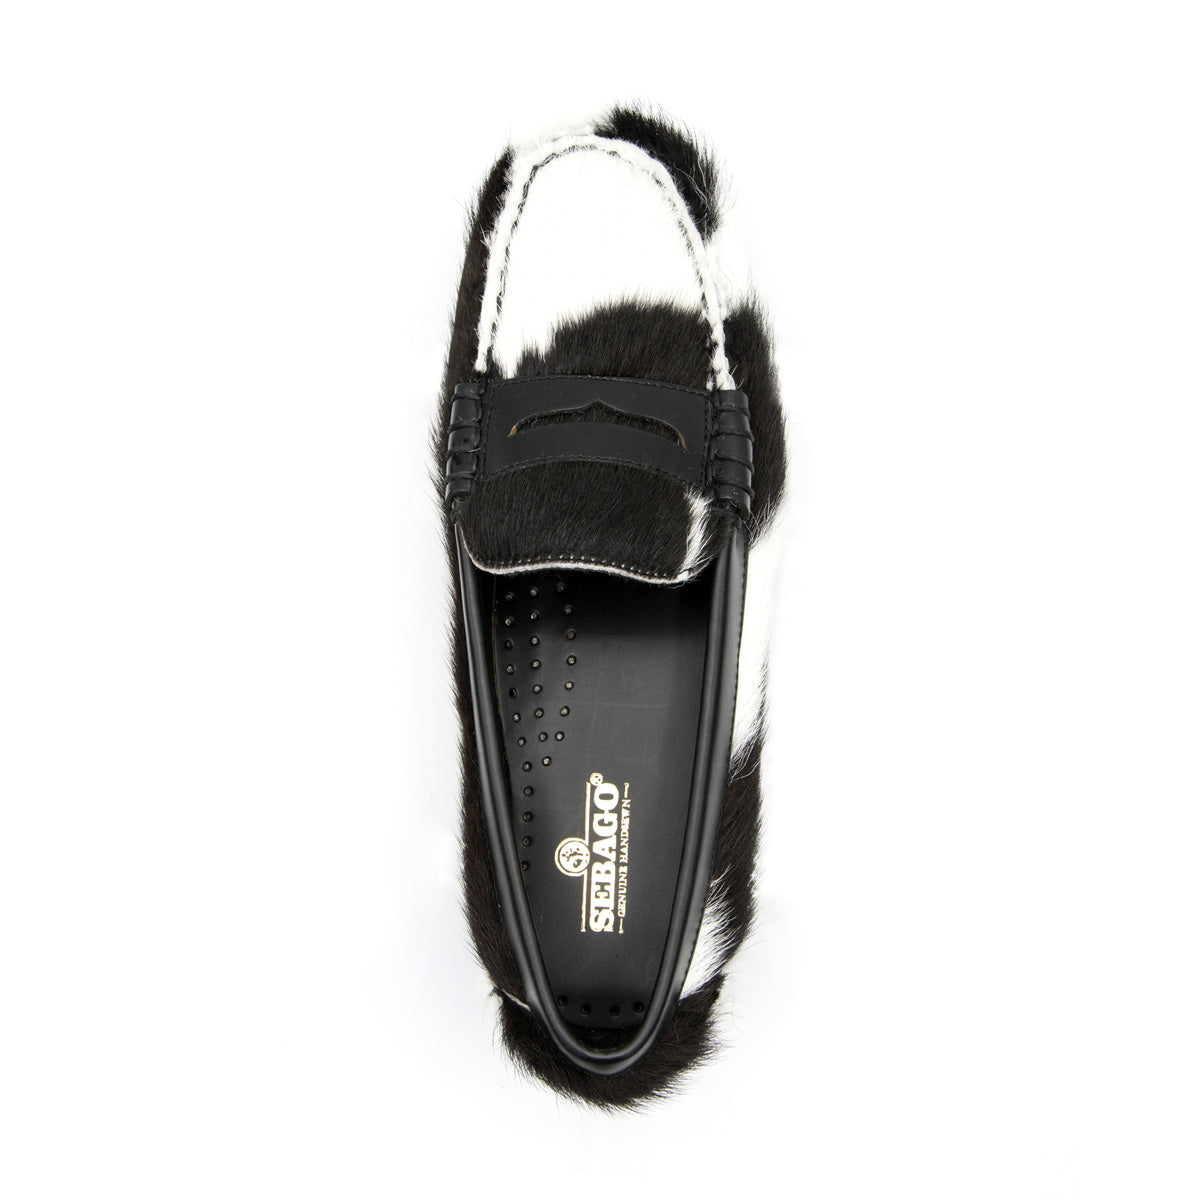 DAN COW WEDGE - BLACK